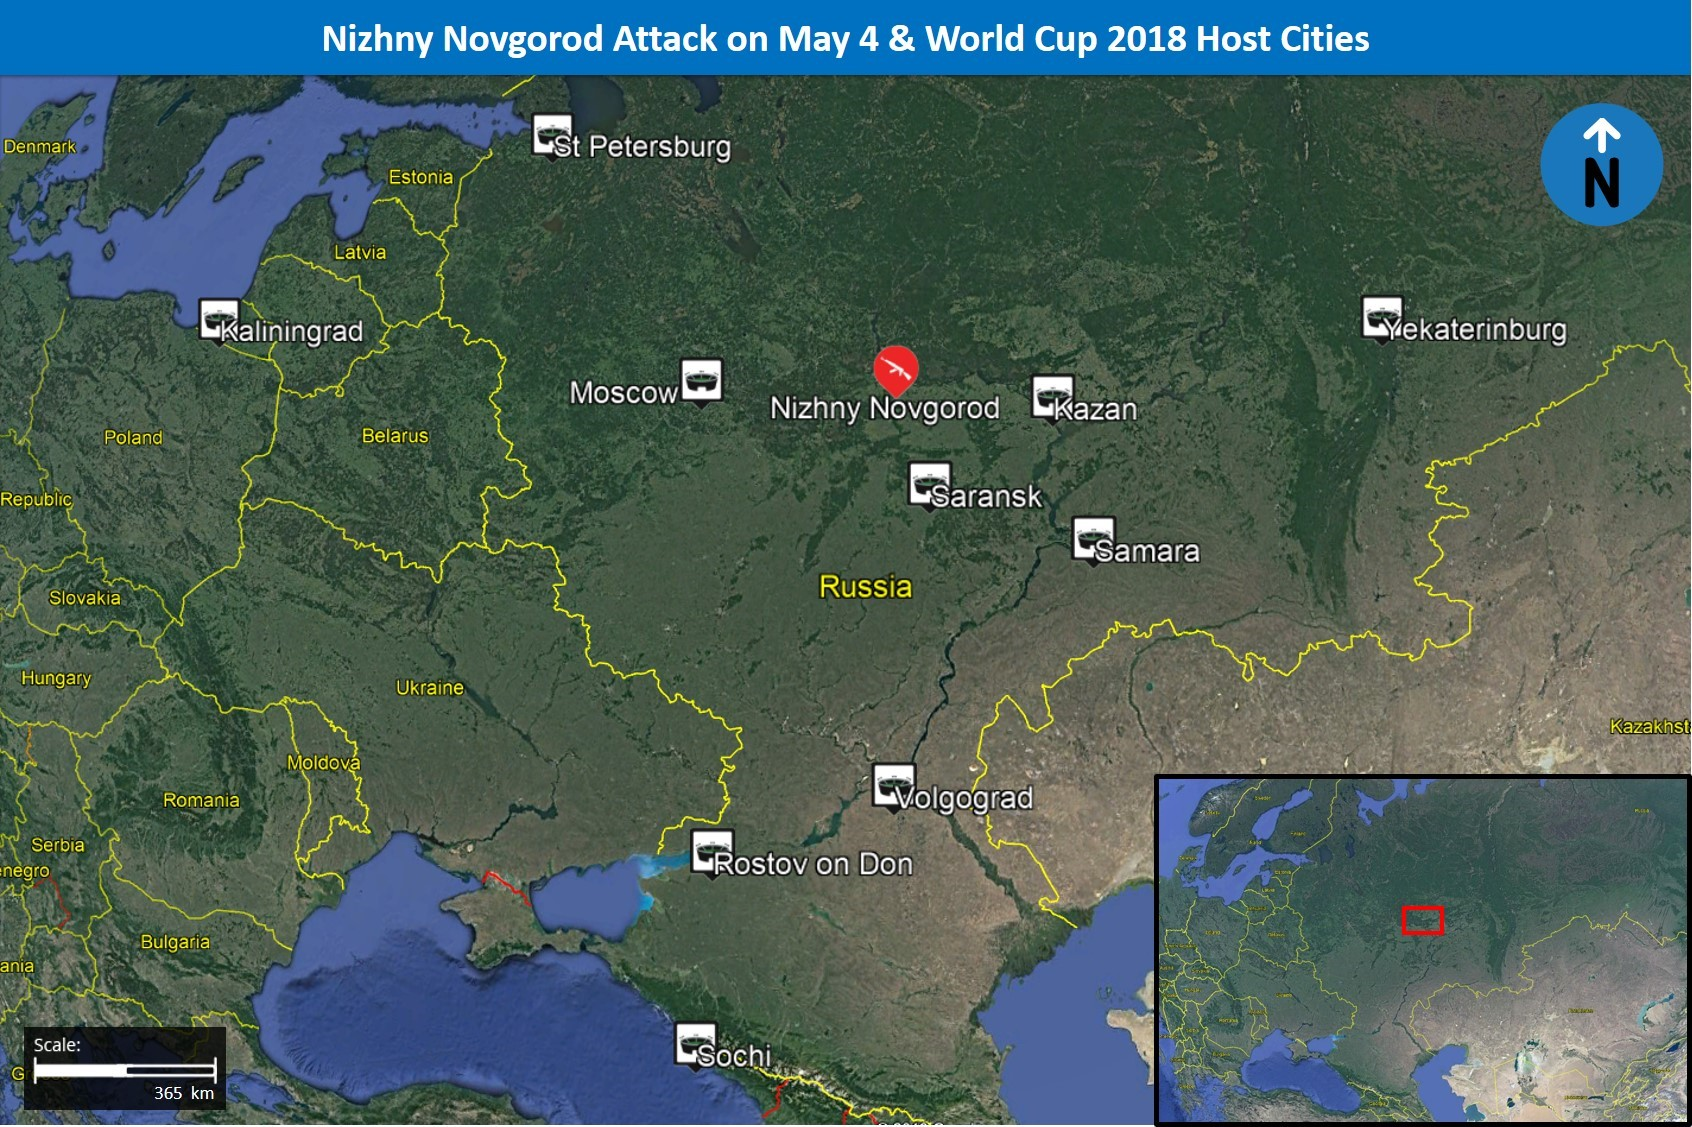 Islamic State-linked media reports shooting attack in Nizhny Novgorod on May 6; first 2018 Islamist militant attack in World Cup host city - Russia Analysis | MAX Security